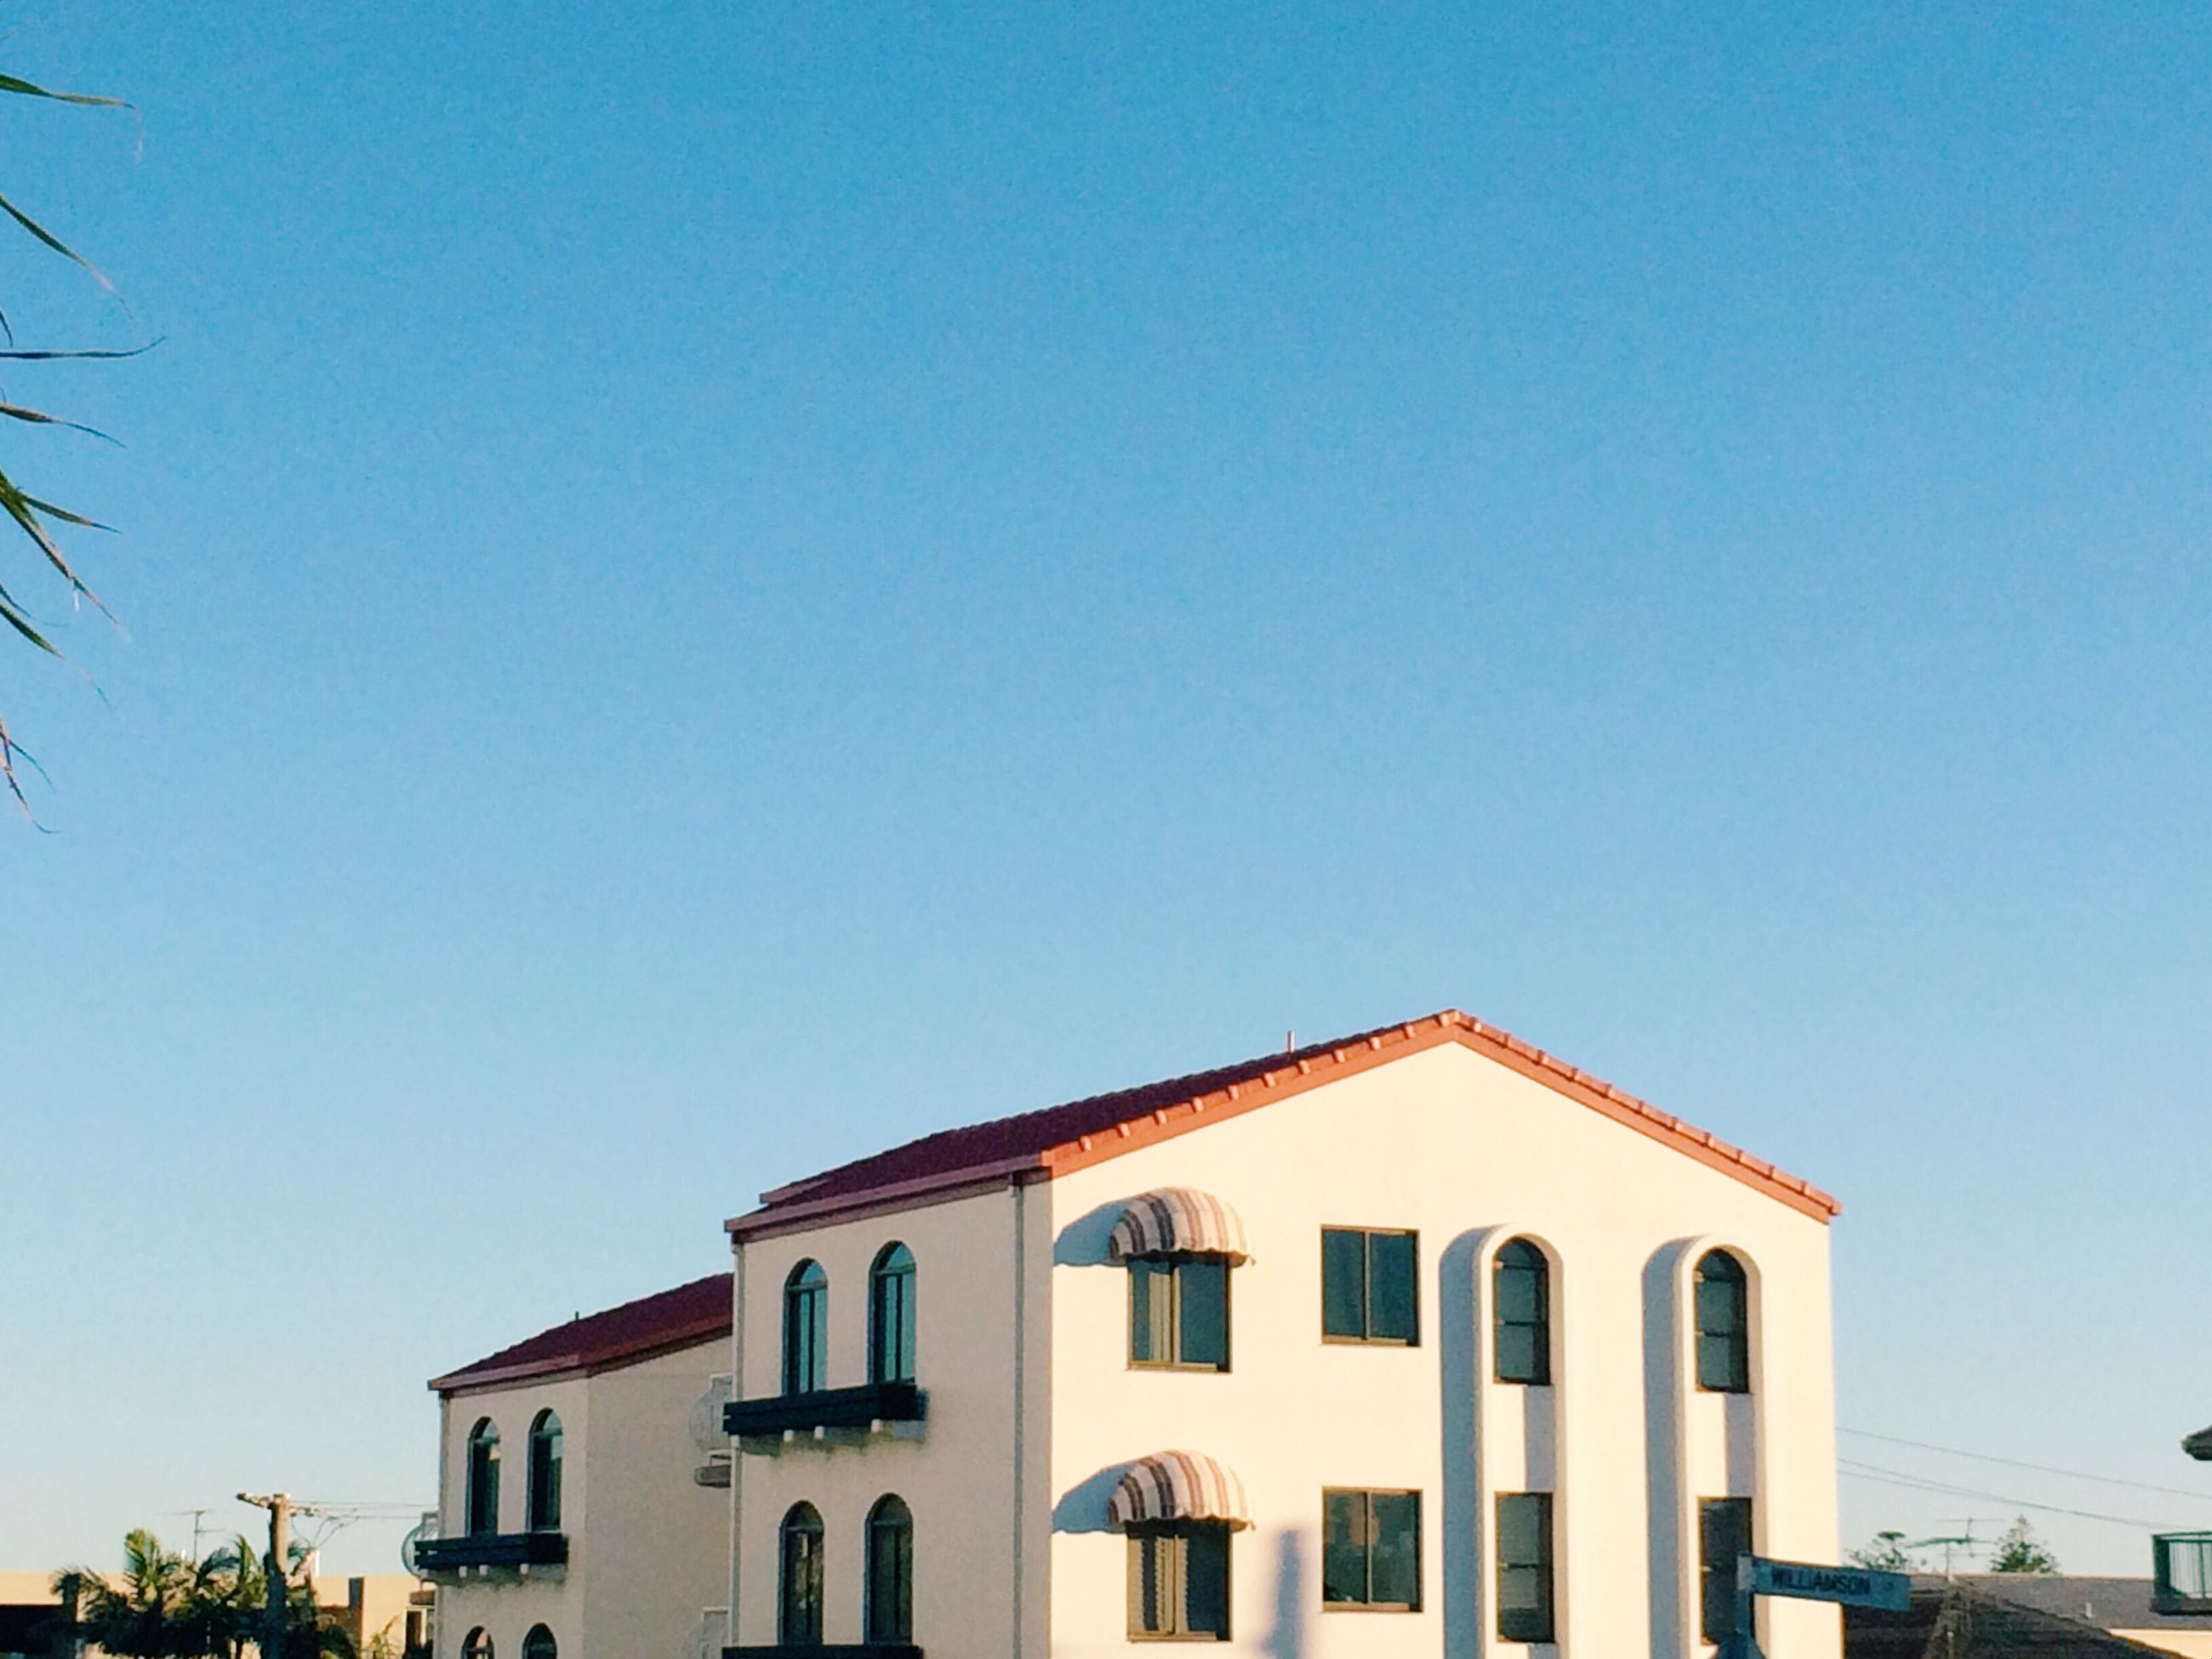 architecture, building exterior, built structure, clear sky, low angle view, blue, residential structure, residential building, building, high section, day, outdoors, no people, exterior, sky